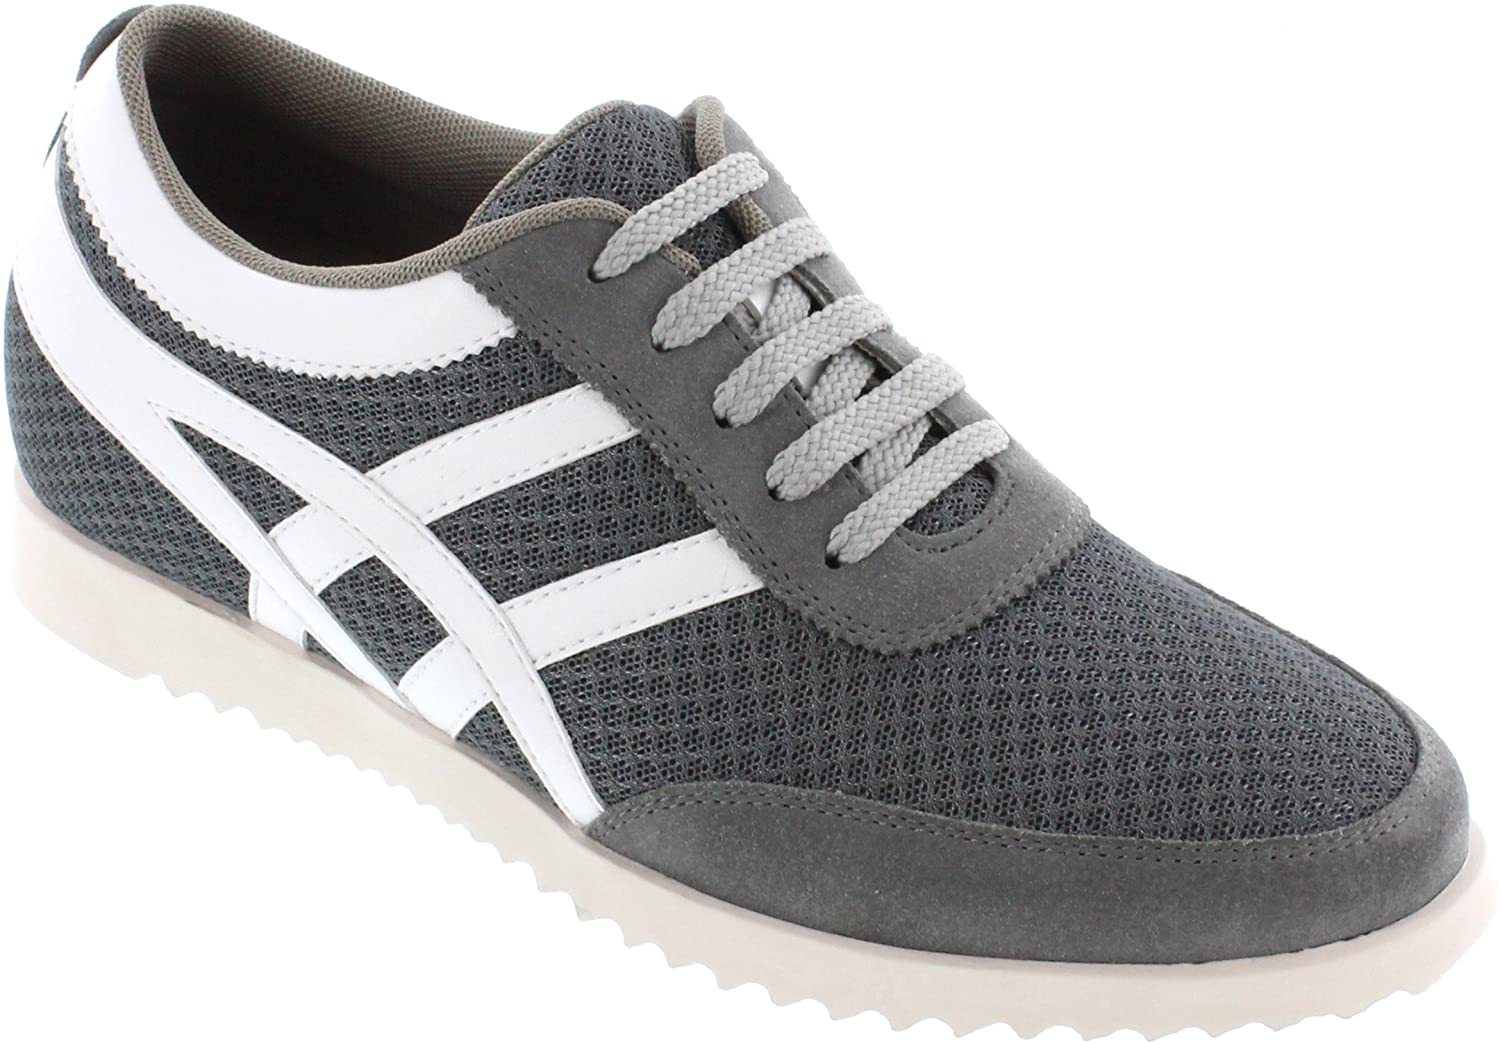 TOTO - L227082 - 2.4 Inches Taller - Height Increasing Elevator shoes - Cement Grey Lightweight Fashion Sneakers